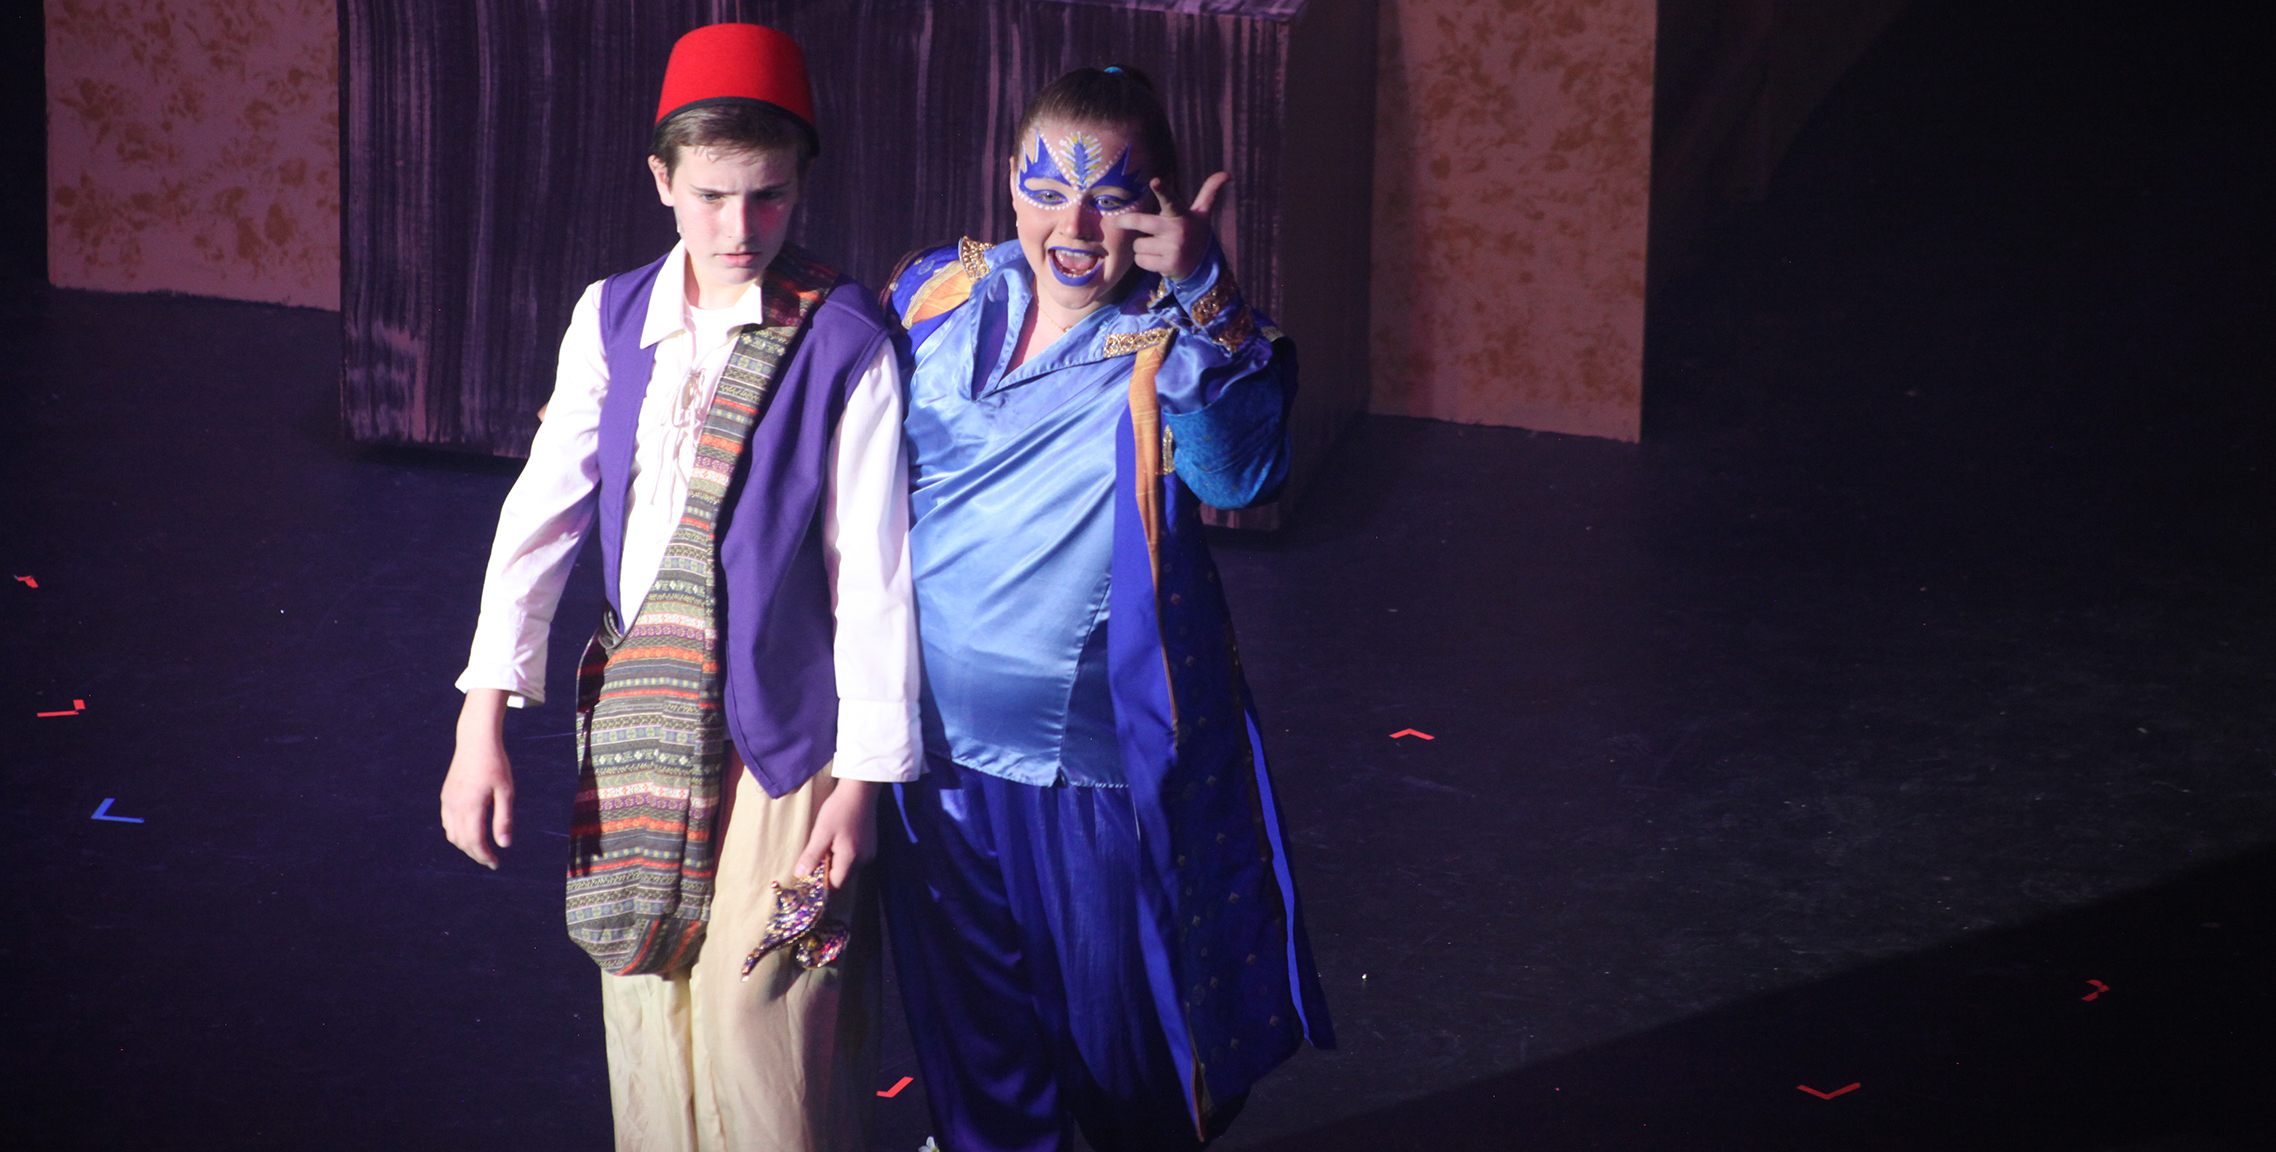 Haven S as the Genie in the middle school production of Aladdin Jr.